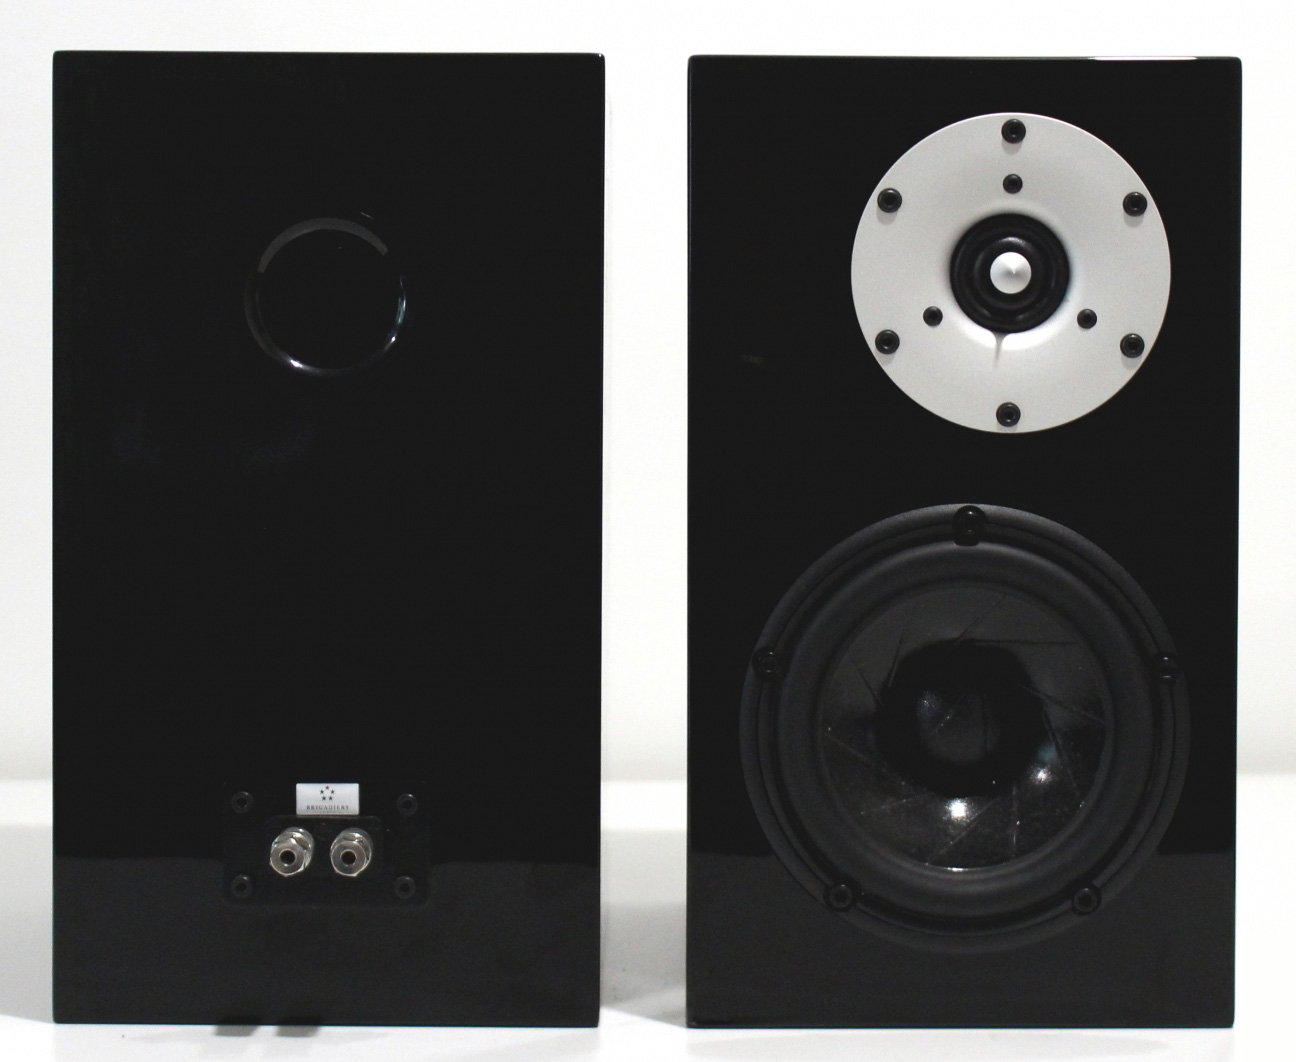 brigadiers_audio_one_audio_mu2_speakers_front_and_rear__large_full